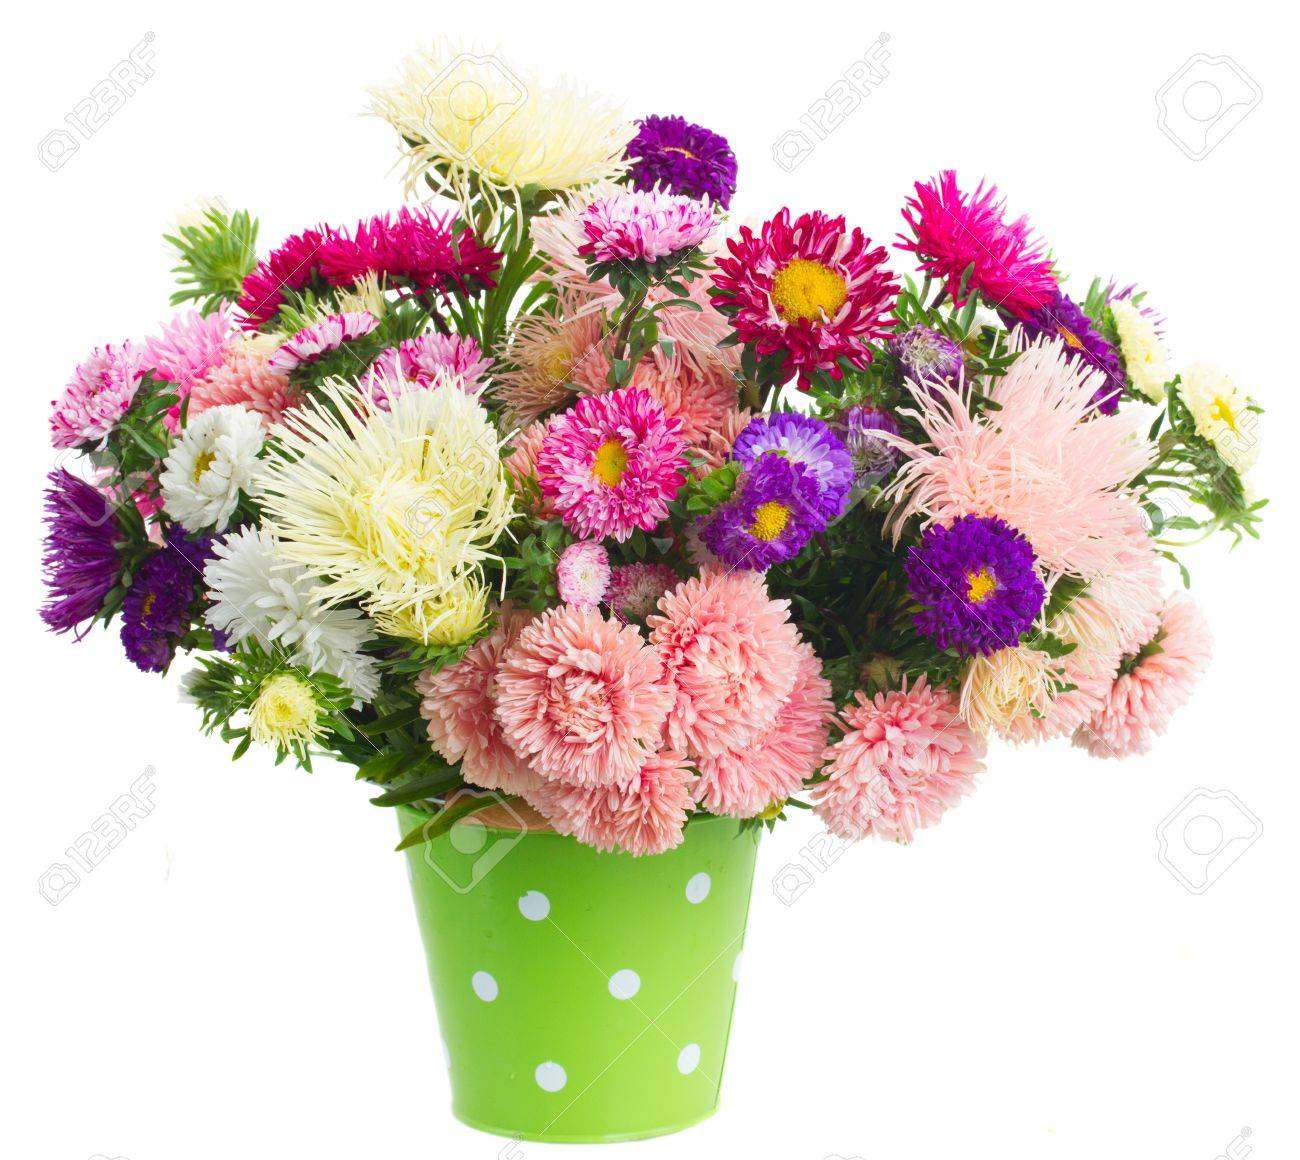 Colorful aster flowers bouquet in green pot isolated on white colorful aster flowers bouquet in green pot isolated on white background stock photo 42135209 izmirmasajfo